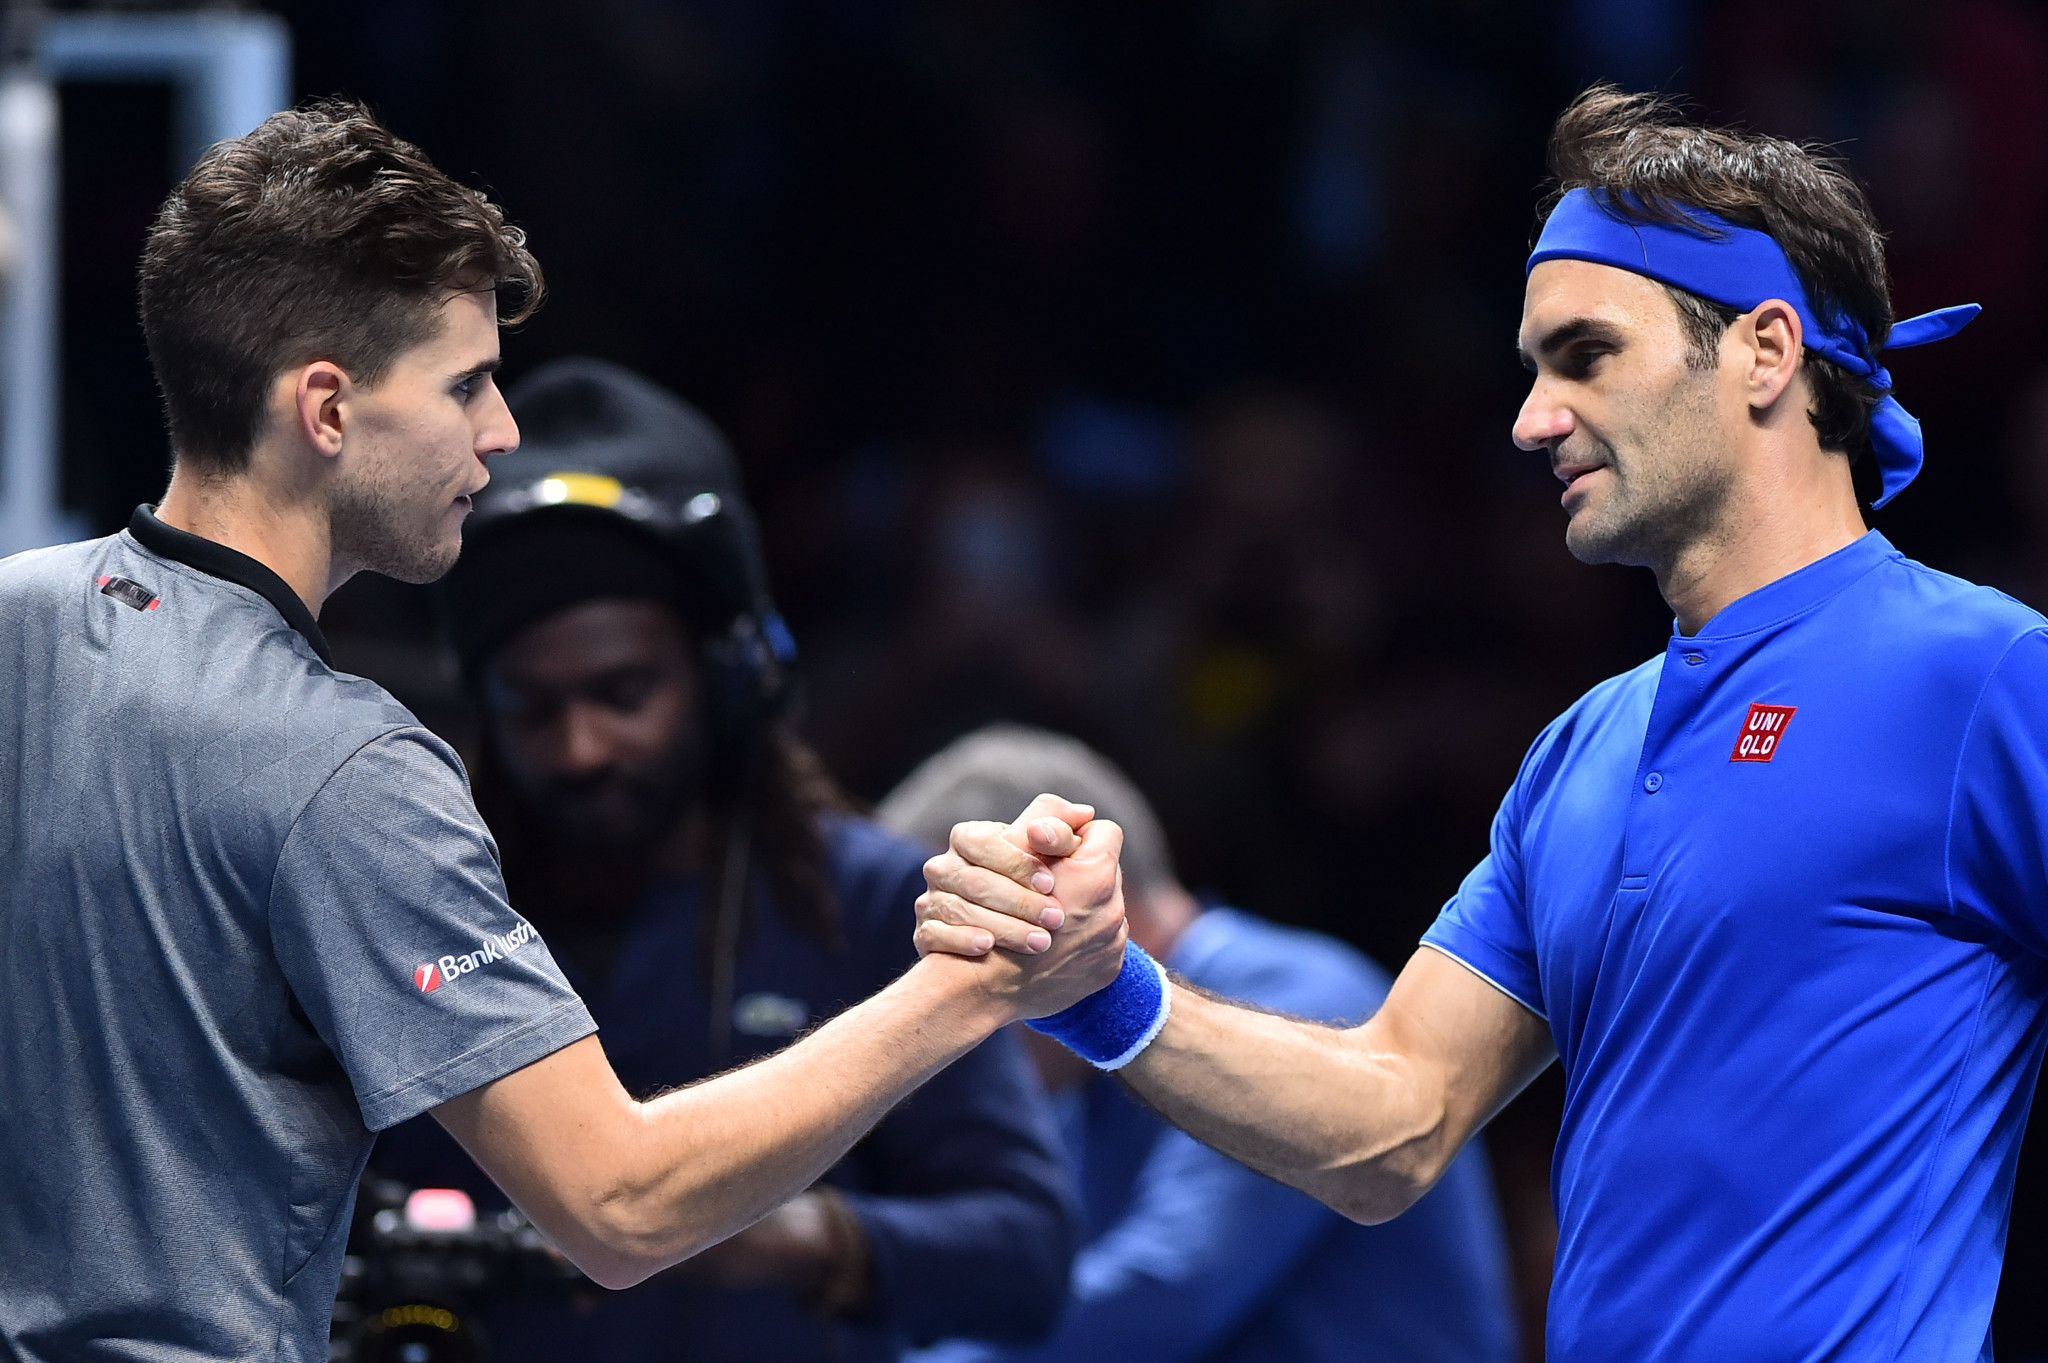 Federer restores ATP Finals fortunes with win over Thiem